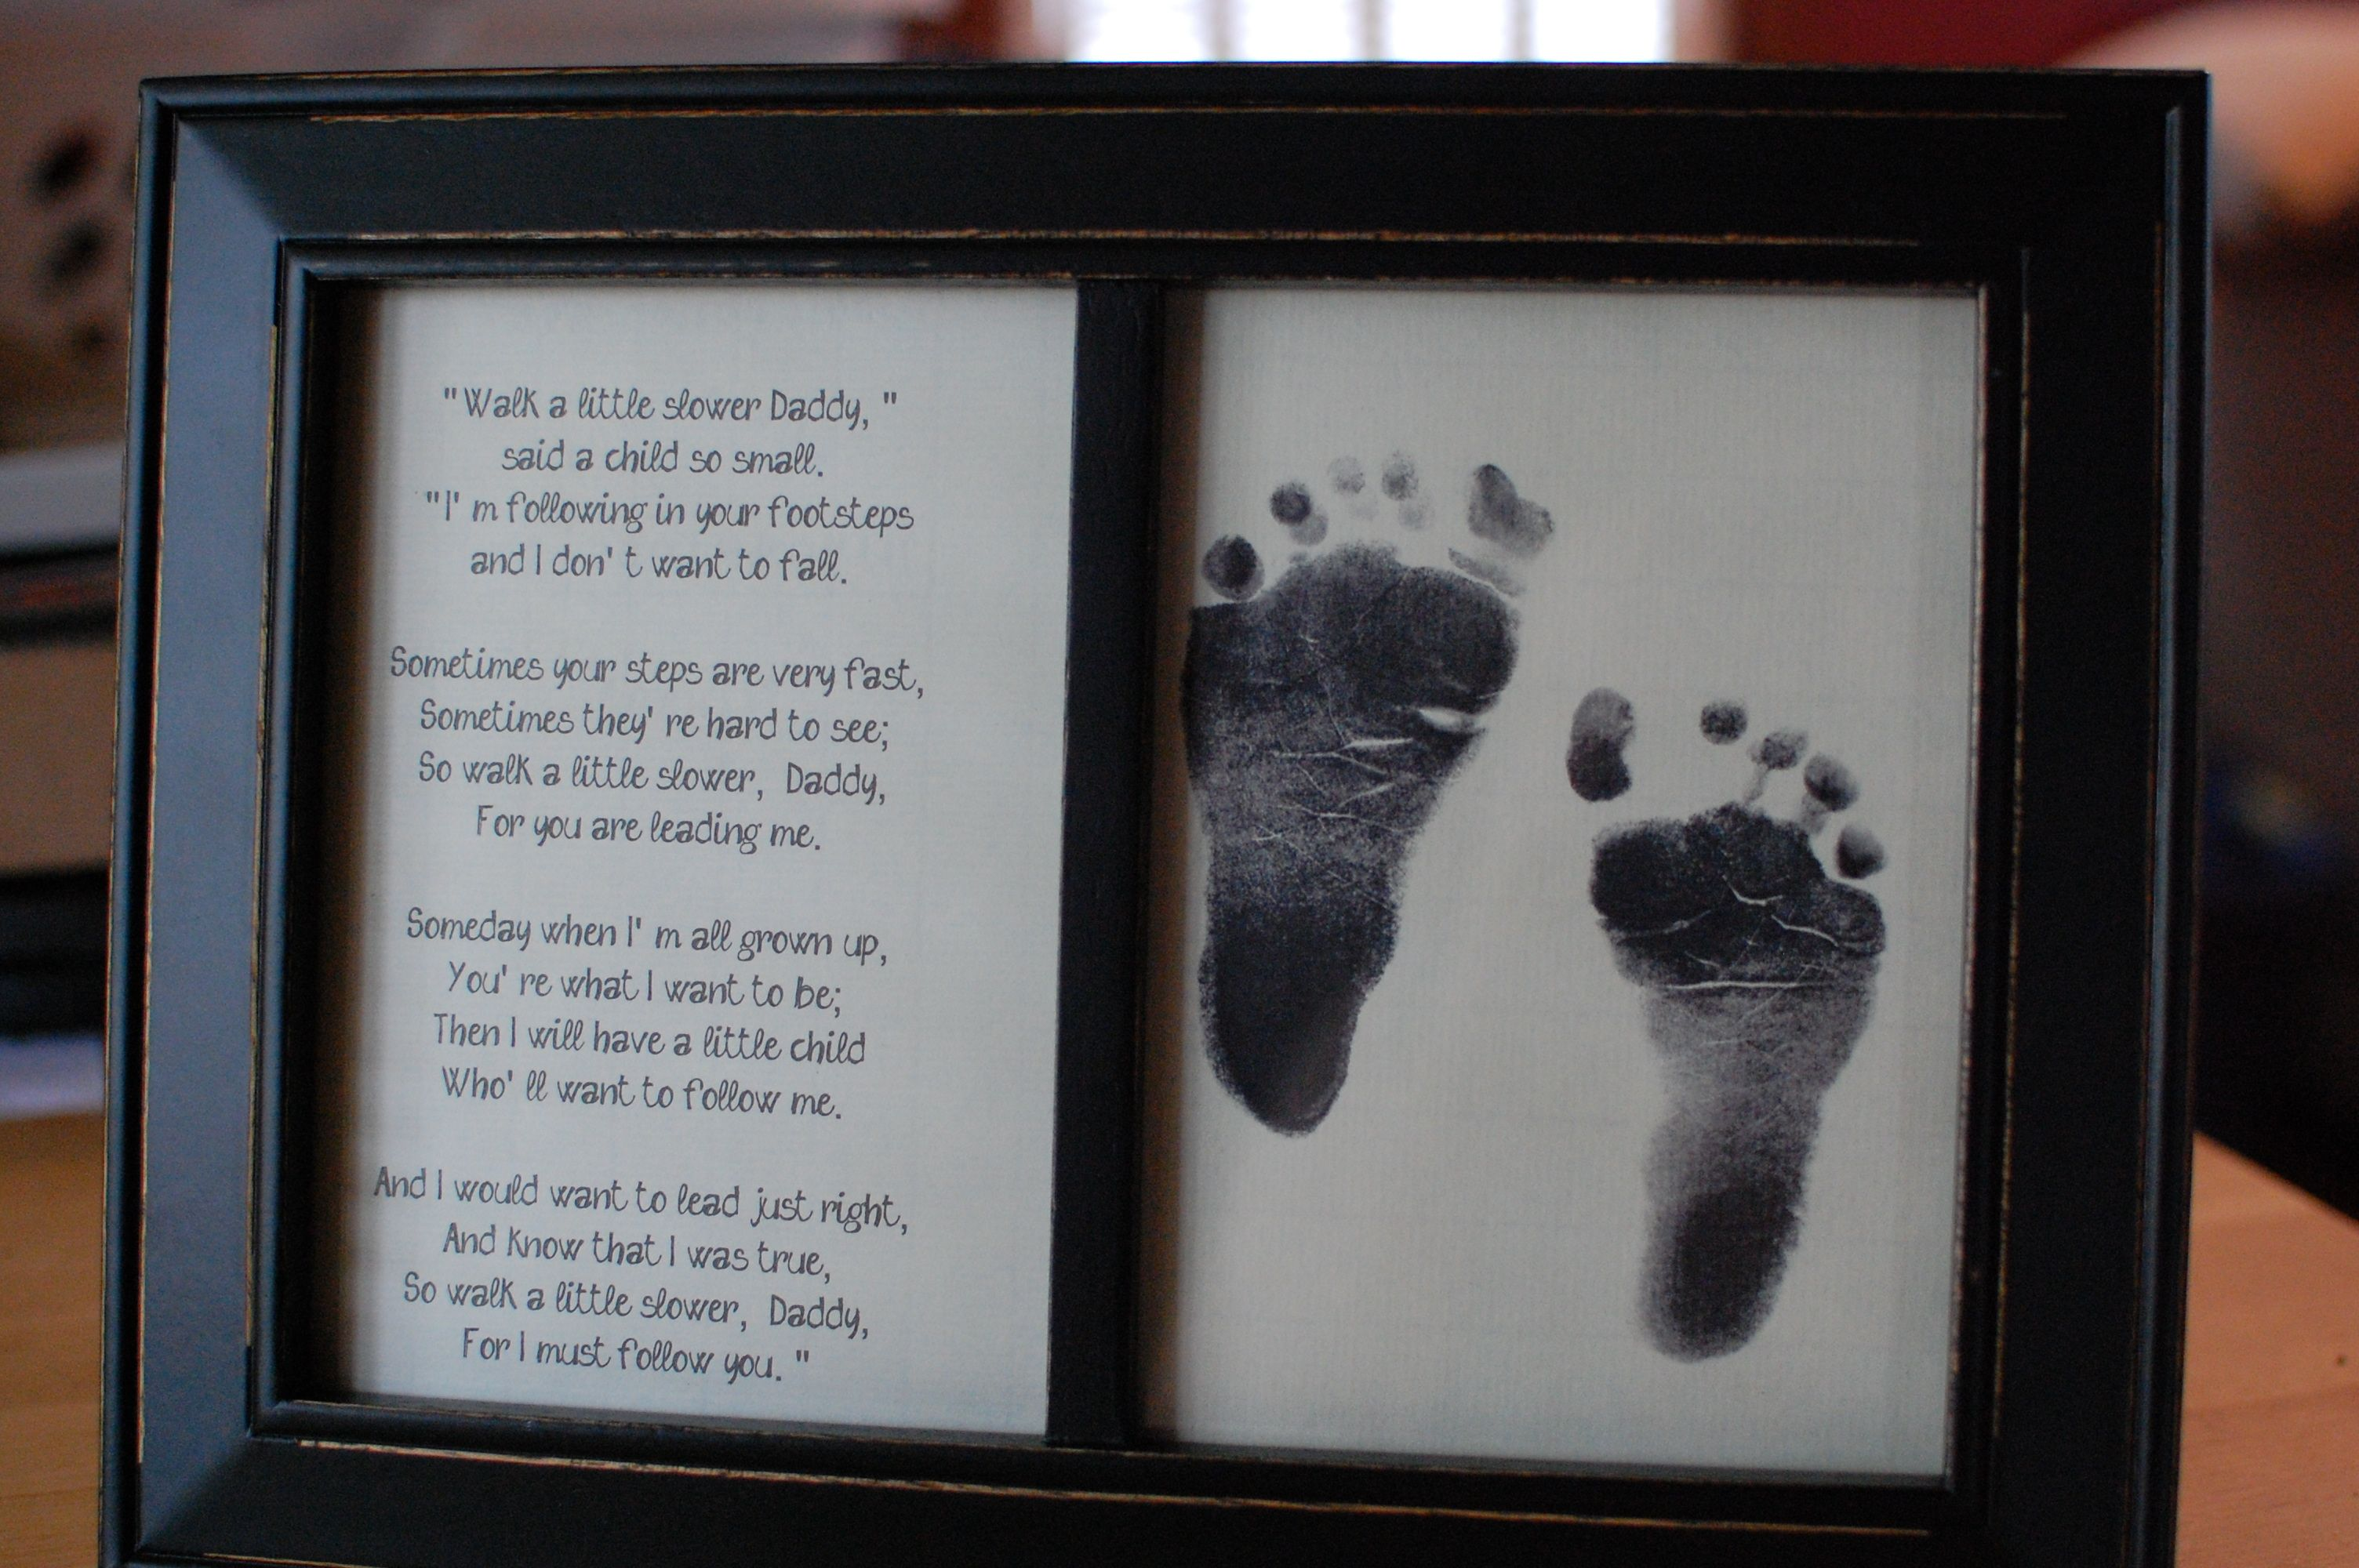 Fathers Day Framed Footprint Gift With Poem Walk A Little Slower